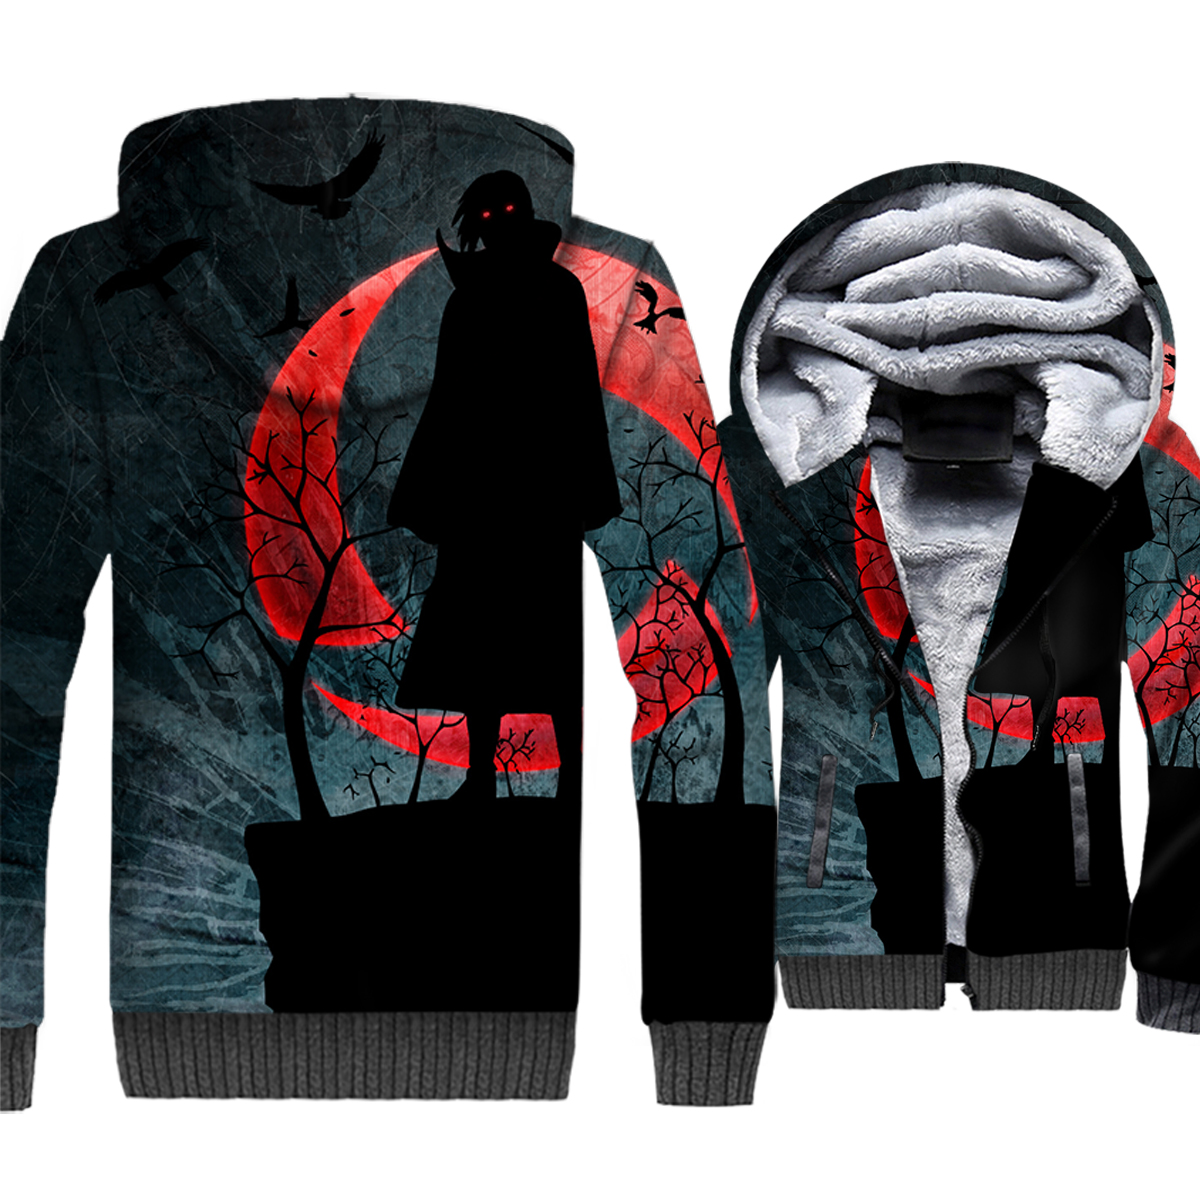 Tokyo Ghoul Hoodie Kaneki Ken Jacket 3D Men Anime Sweatshirt 2018 New Brand Winter Thick Fleece Warm Zipper Coat Plus Size 5XL